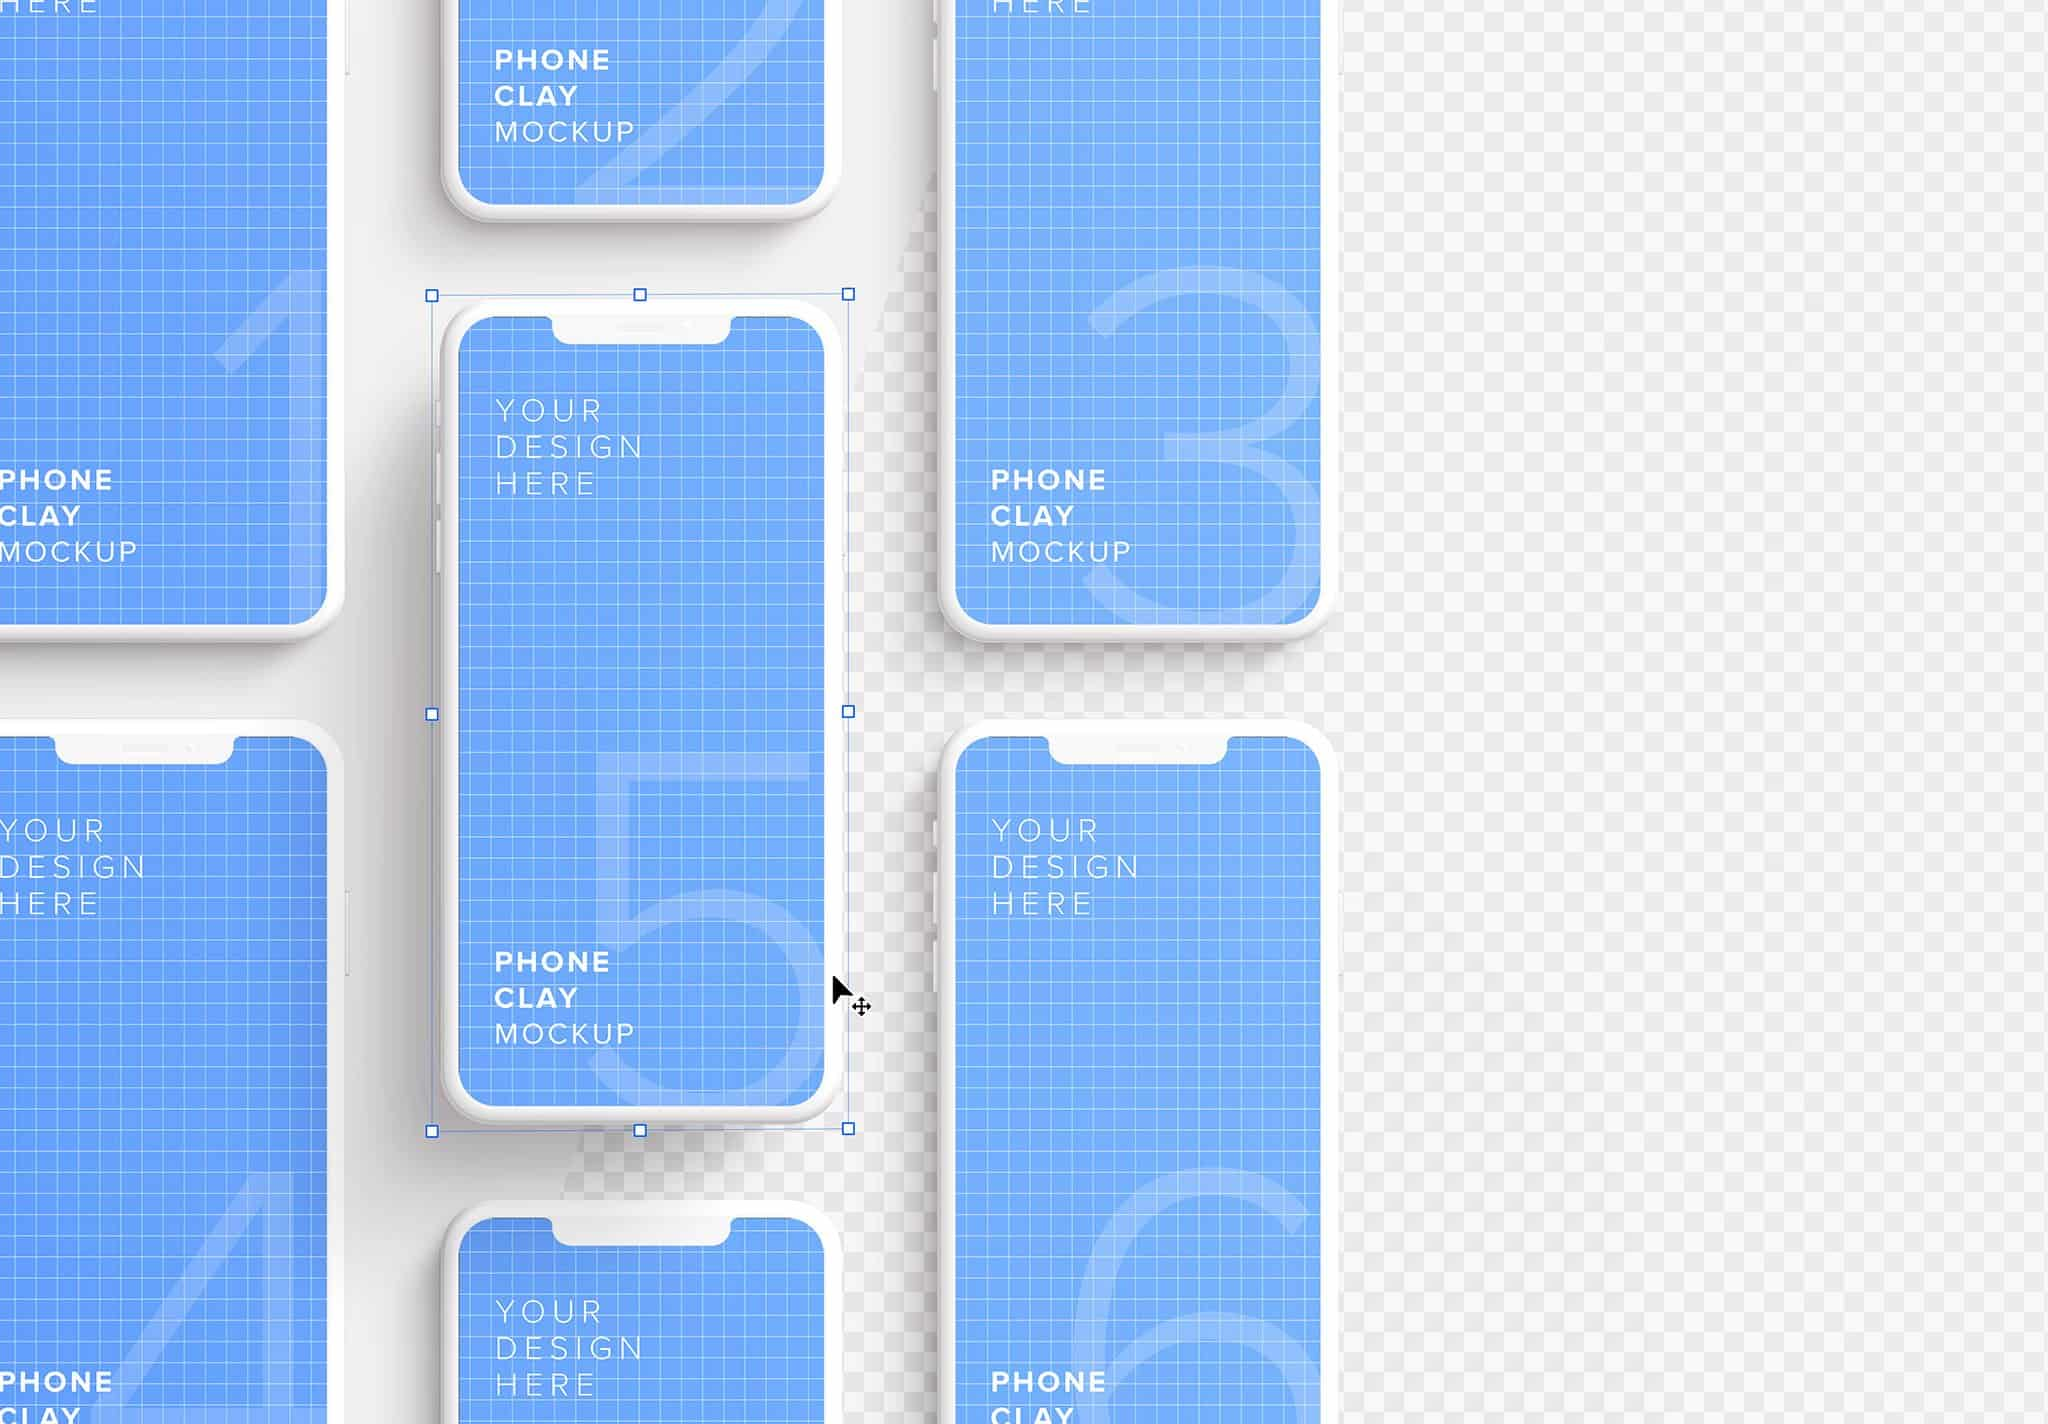 iphone smartphone clay layout 4 mockup image01